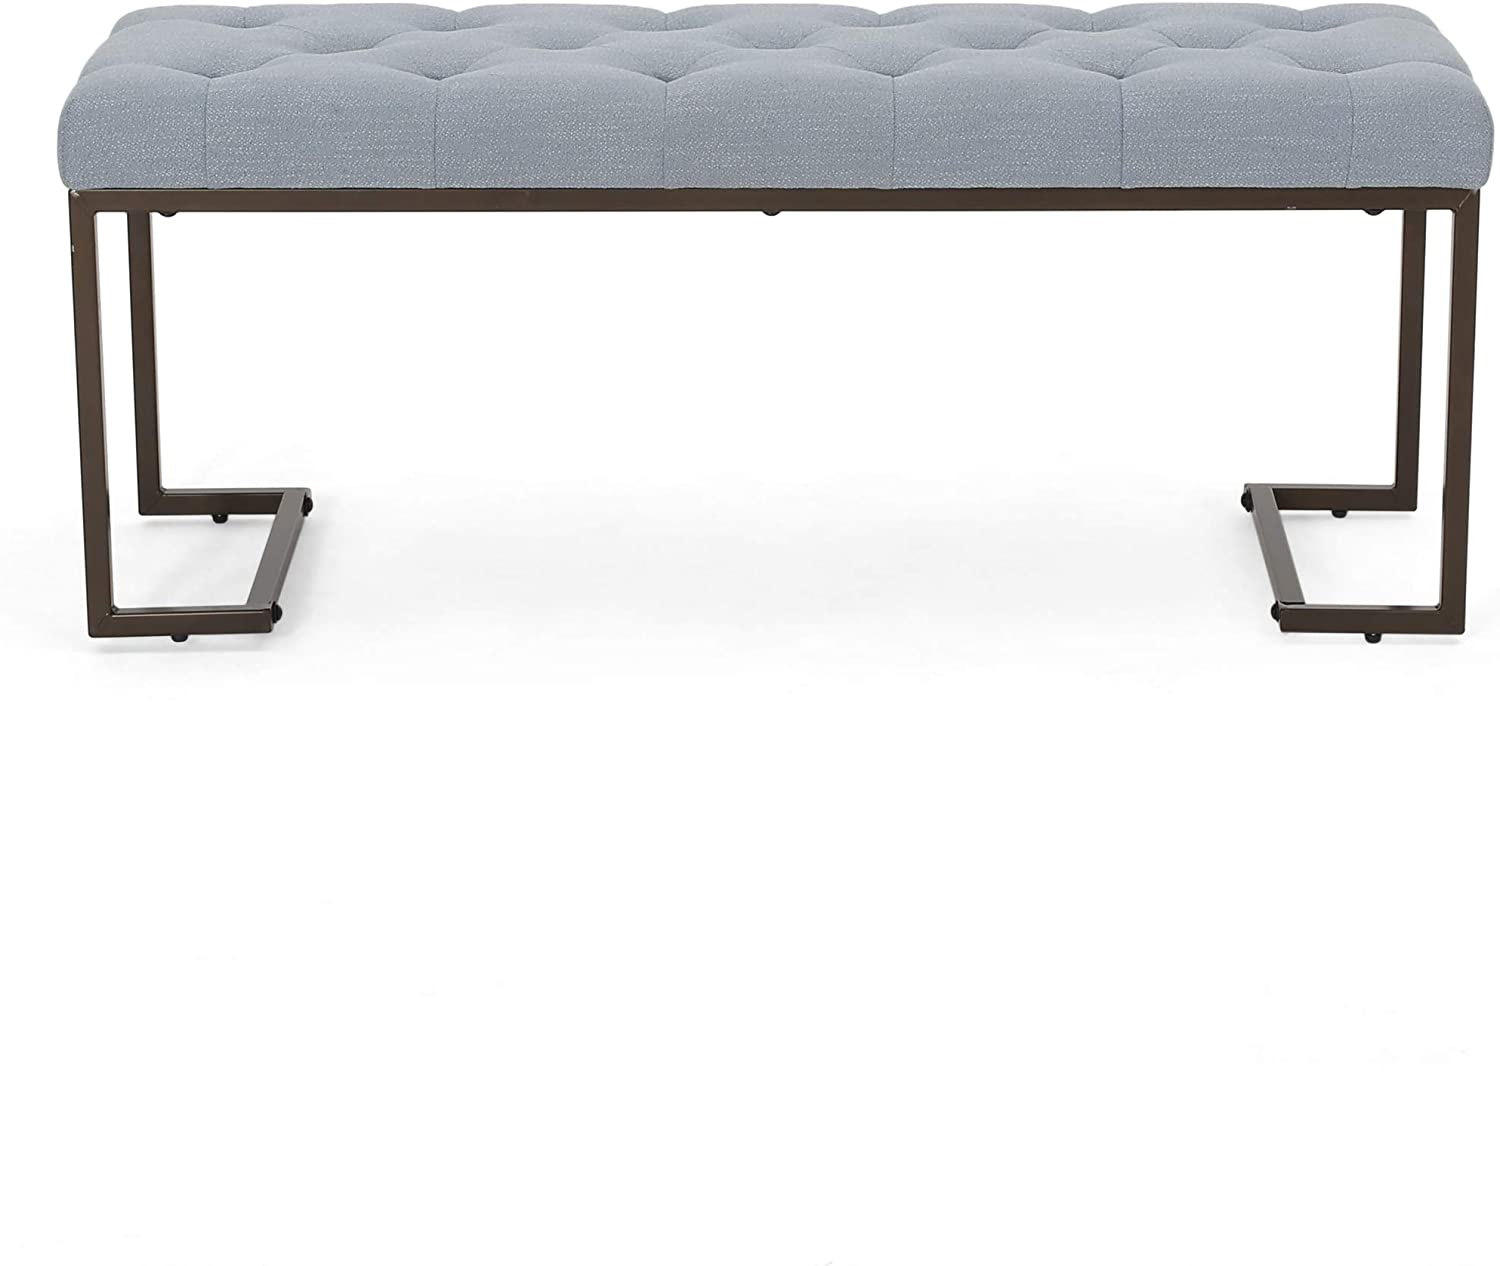 Great Deal Furniture Gladys Modern Fabric Bench, Dusty Blue and Bronze